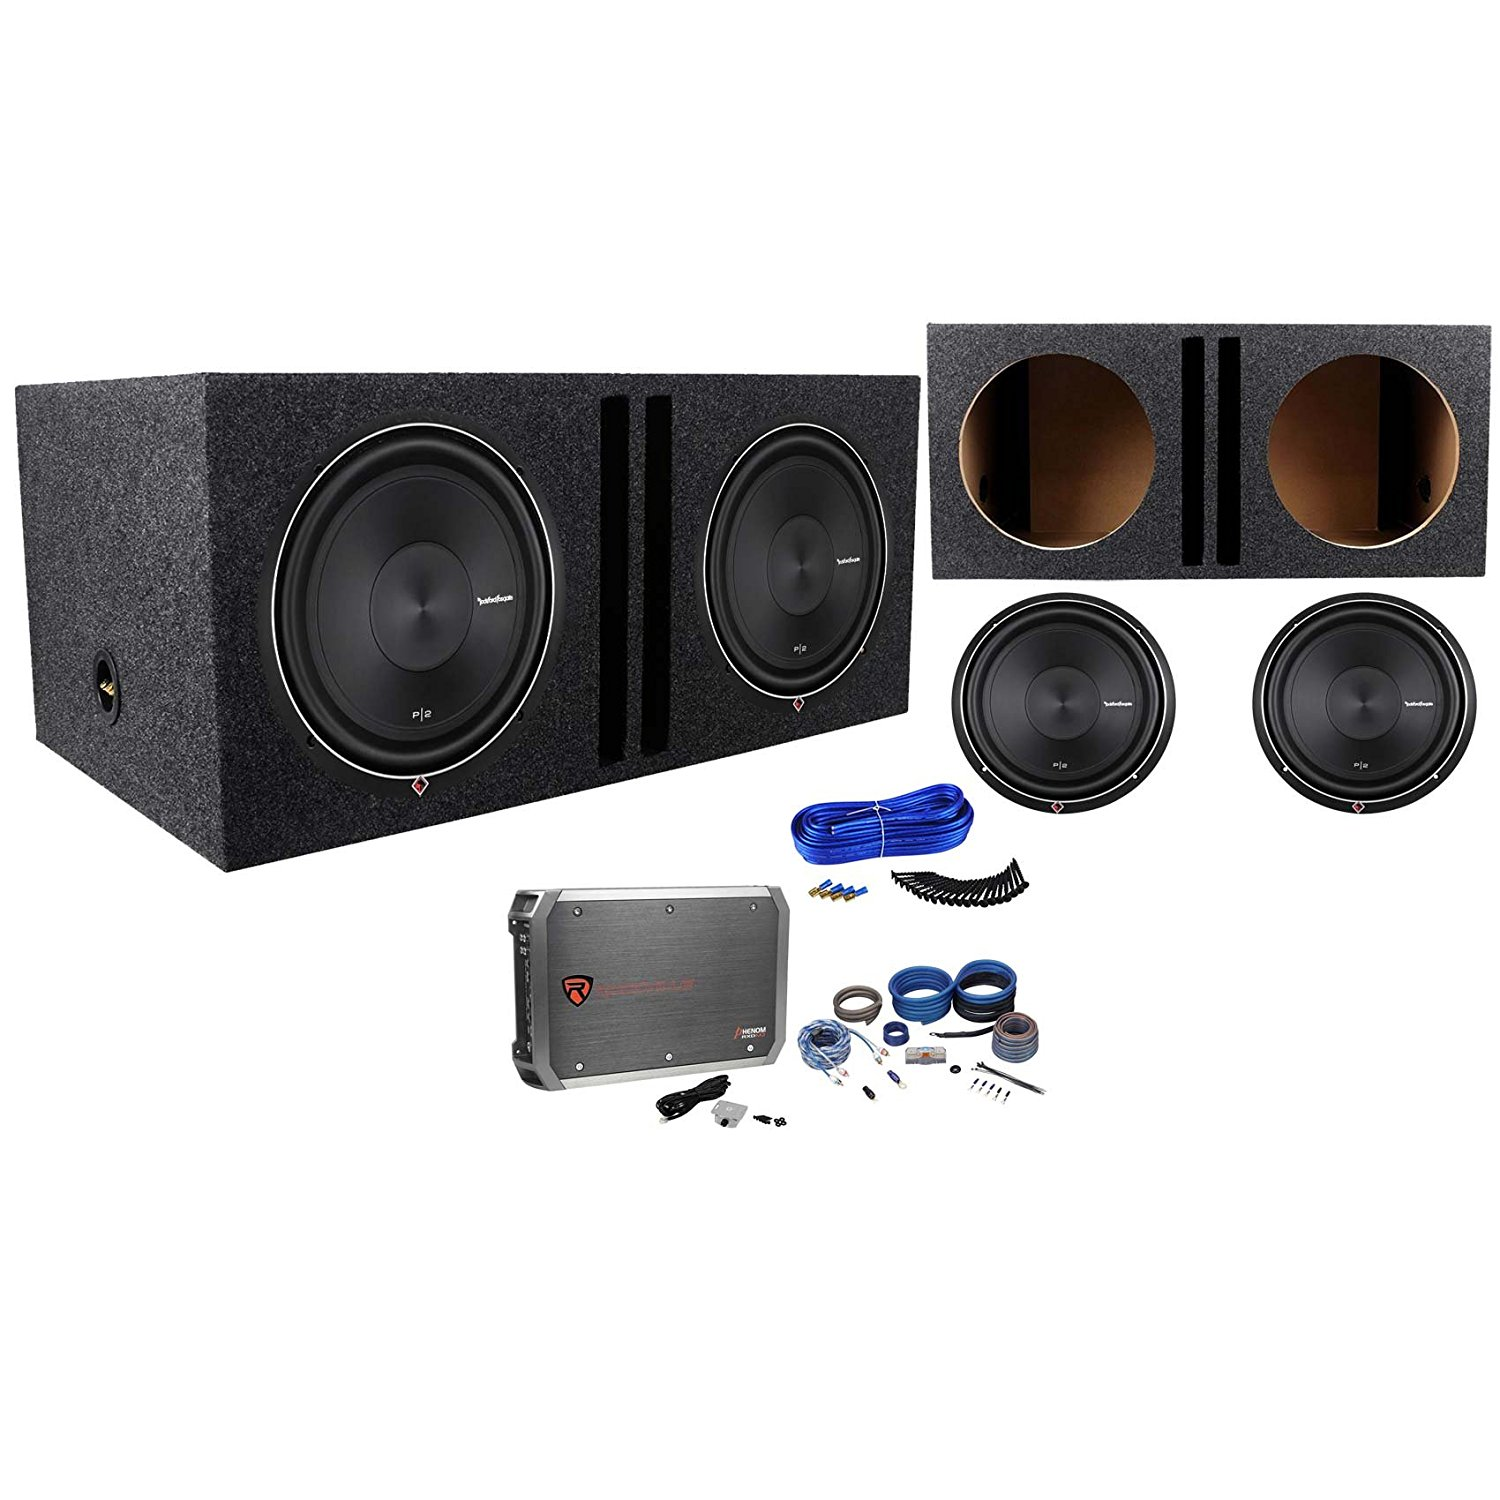 Wiring Kits For Subs Diagrams Street Rod Buy 2 Rockford Fosgate P2d4 12 Vented Enclosure 750w Hot